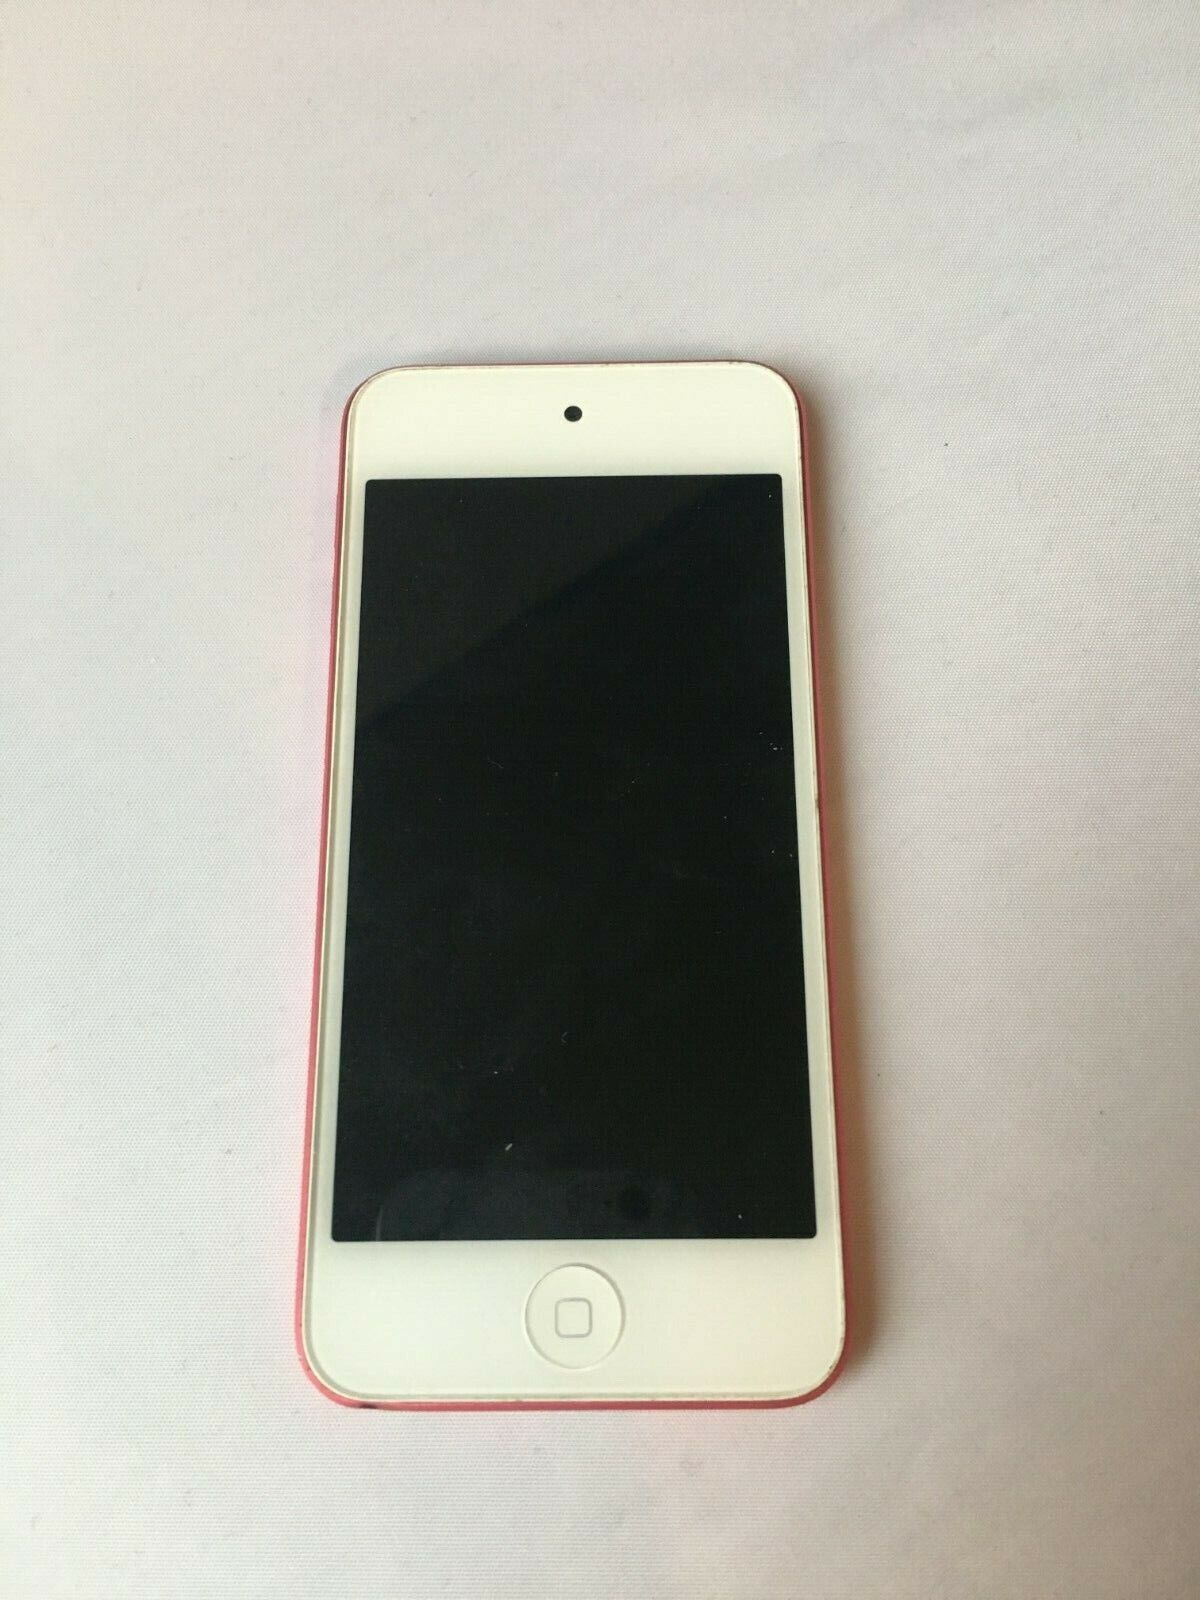 Apple IPod Touch 5th Generation Pink 16GB  - $99.00